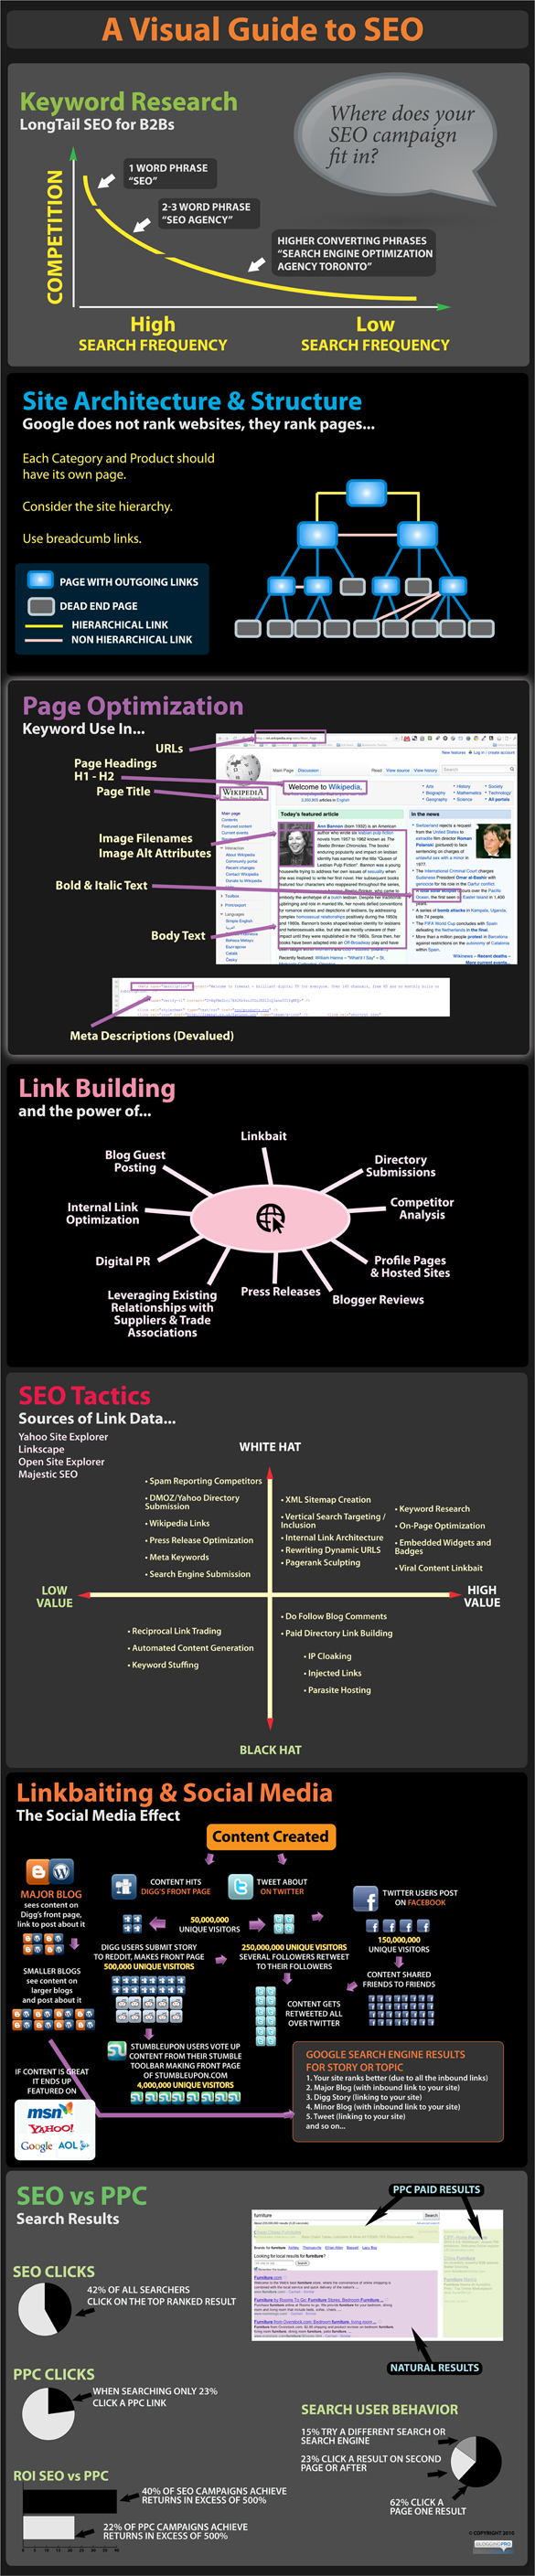 Infographic- a visual guide to SEO (search engine optimization)